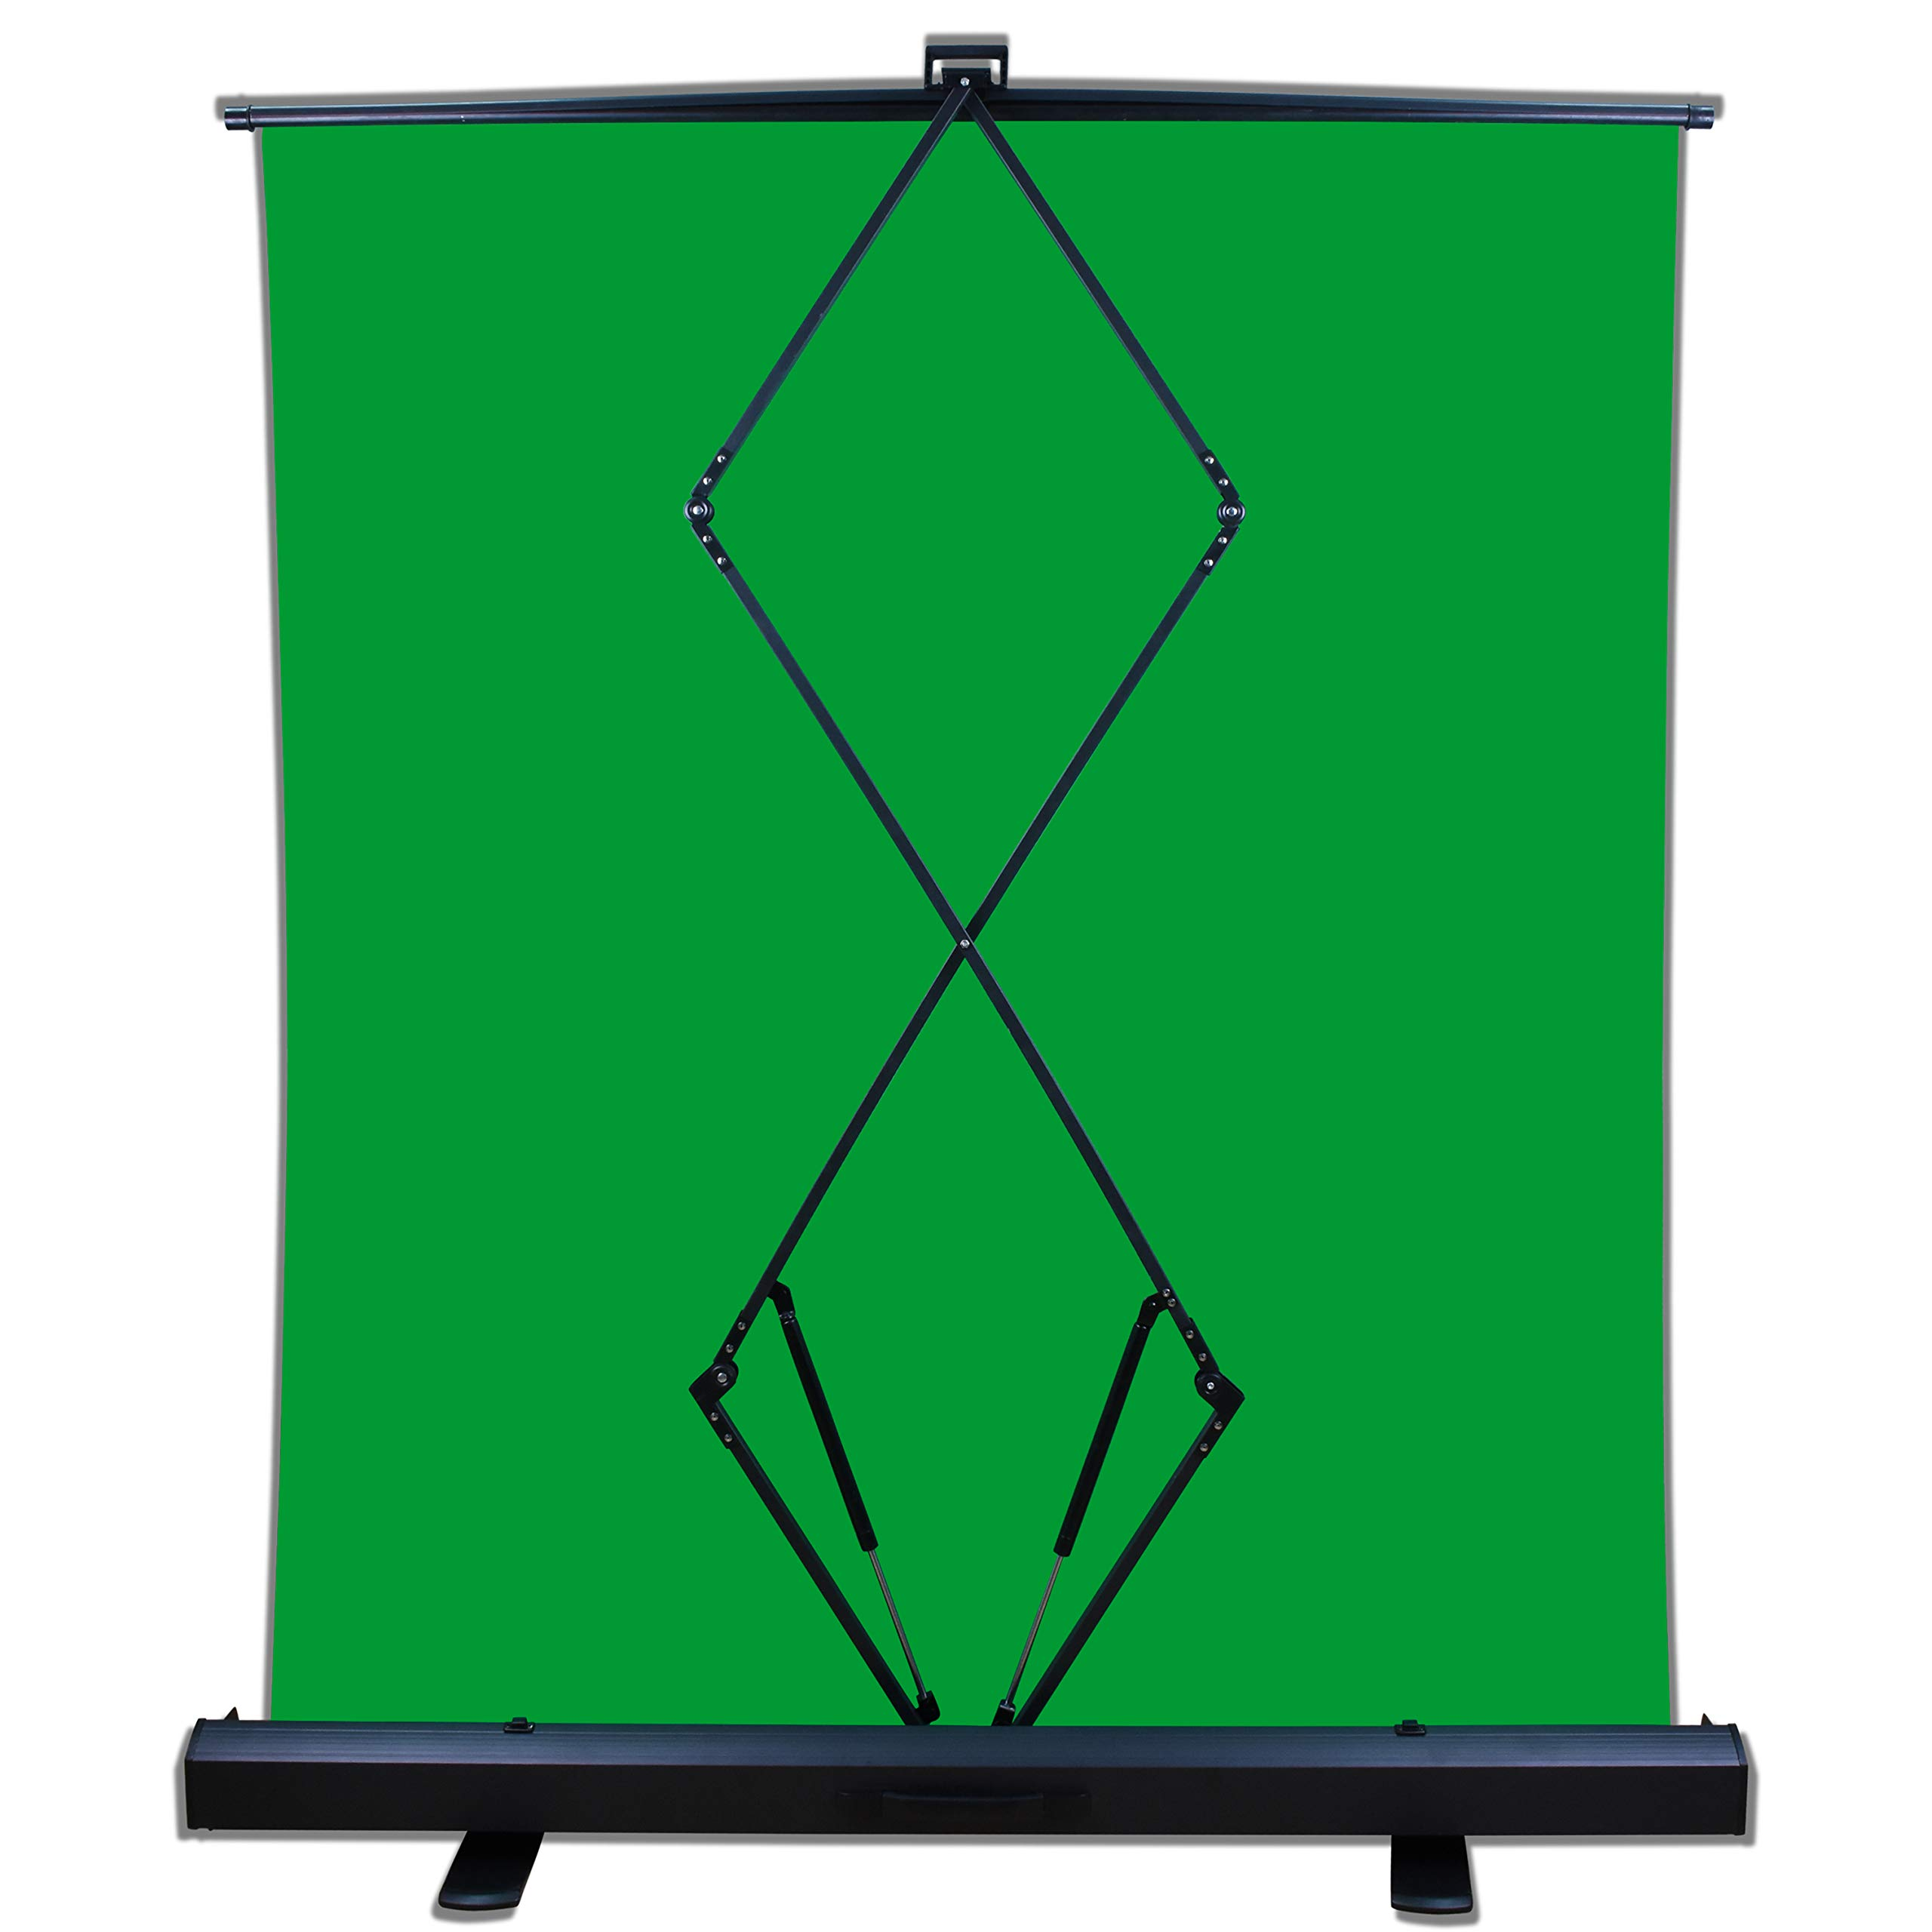 Emart Green Screen, Collapsible Chromakey Panel for Photo Backdrop Video Studio,Portable Pull Up Wrinkle-Resistant Greenscreen Background, Auto-Locking Air Cushion Frame, Solid Safety Aluminium Base by EMART (Image #5)